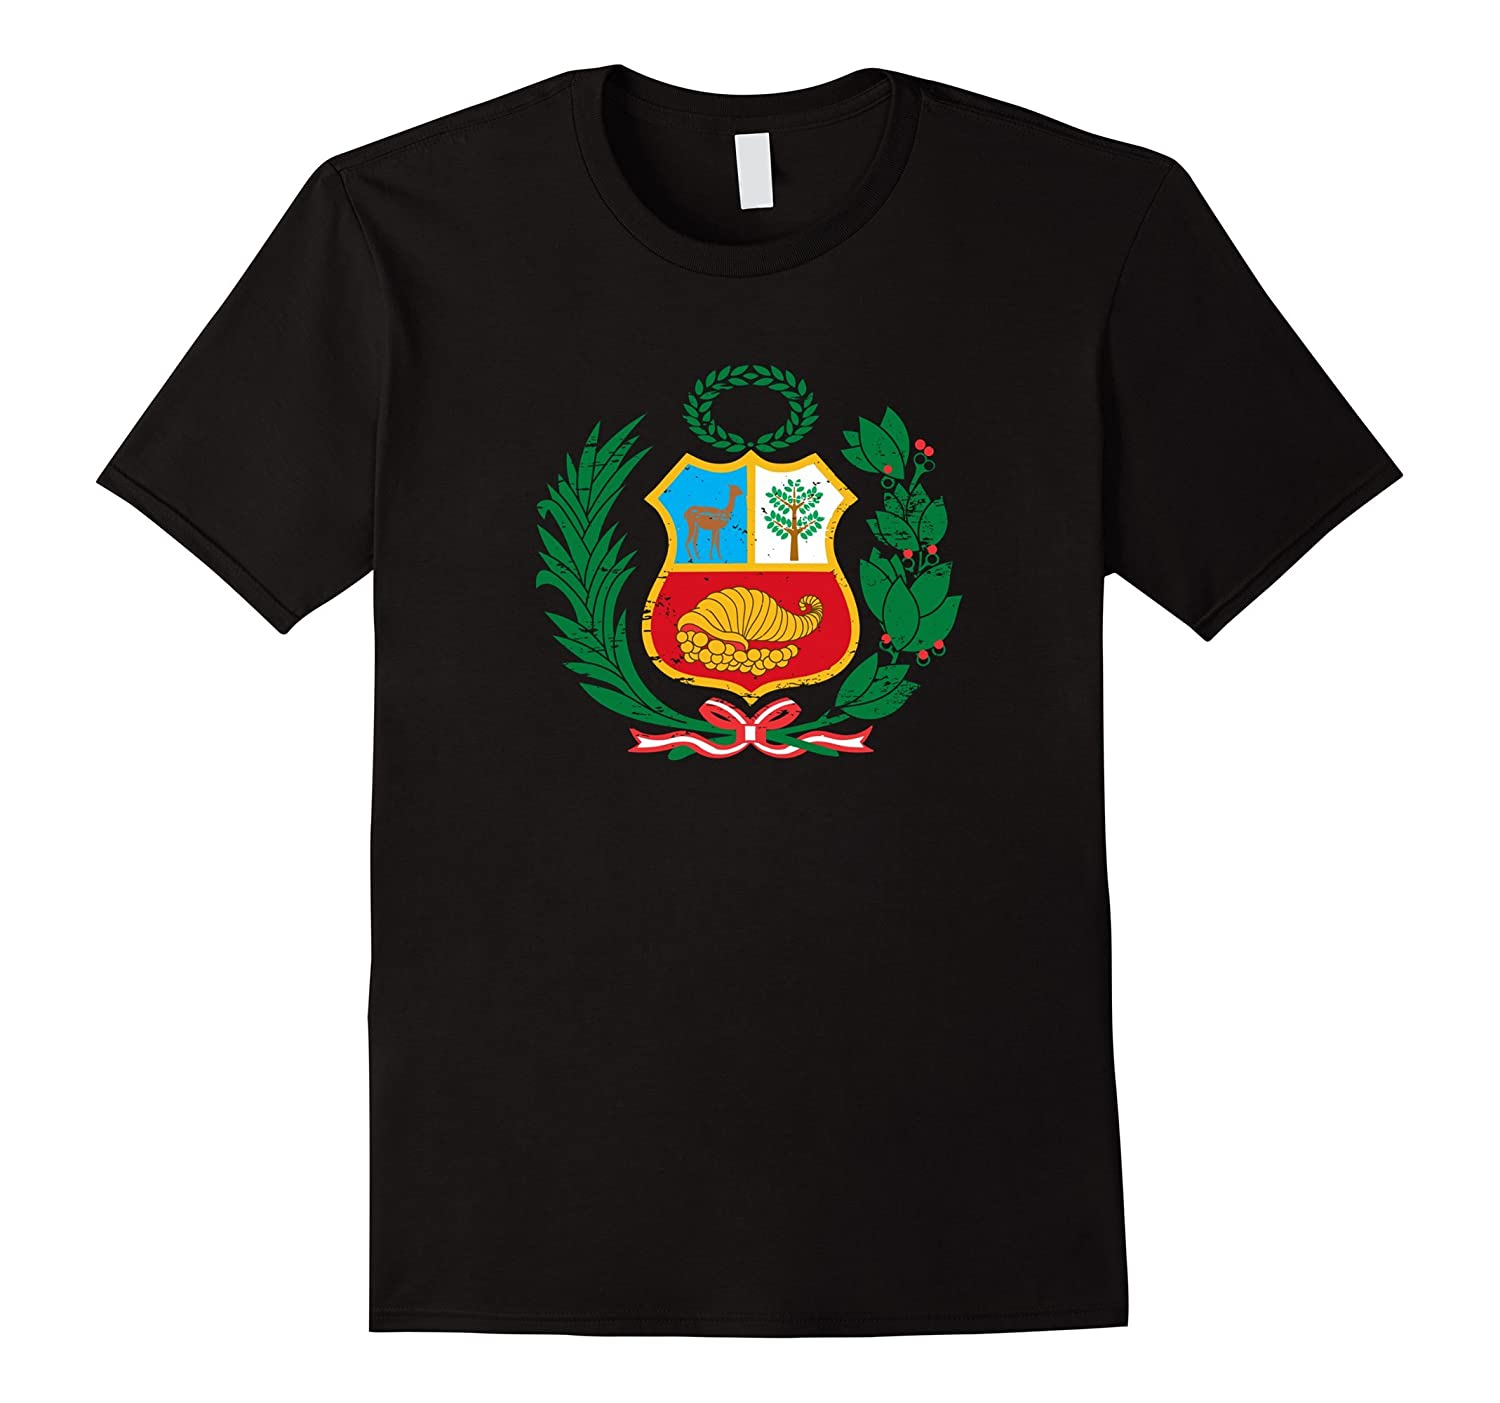 Peru T-Shirt Peruvian Coat of Arms Escudo Men Women Kids-TJ